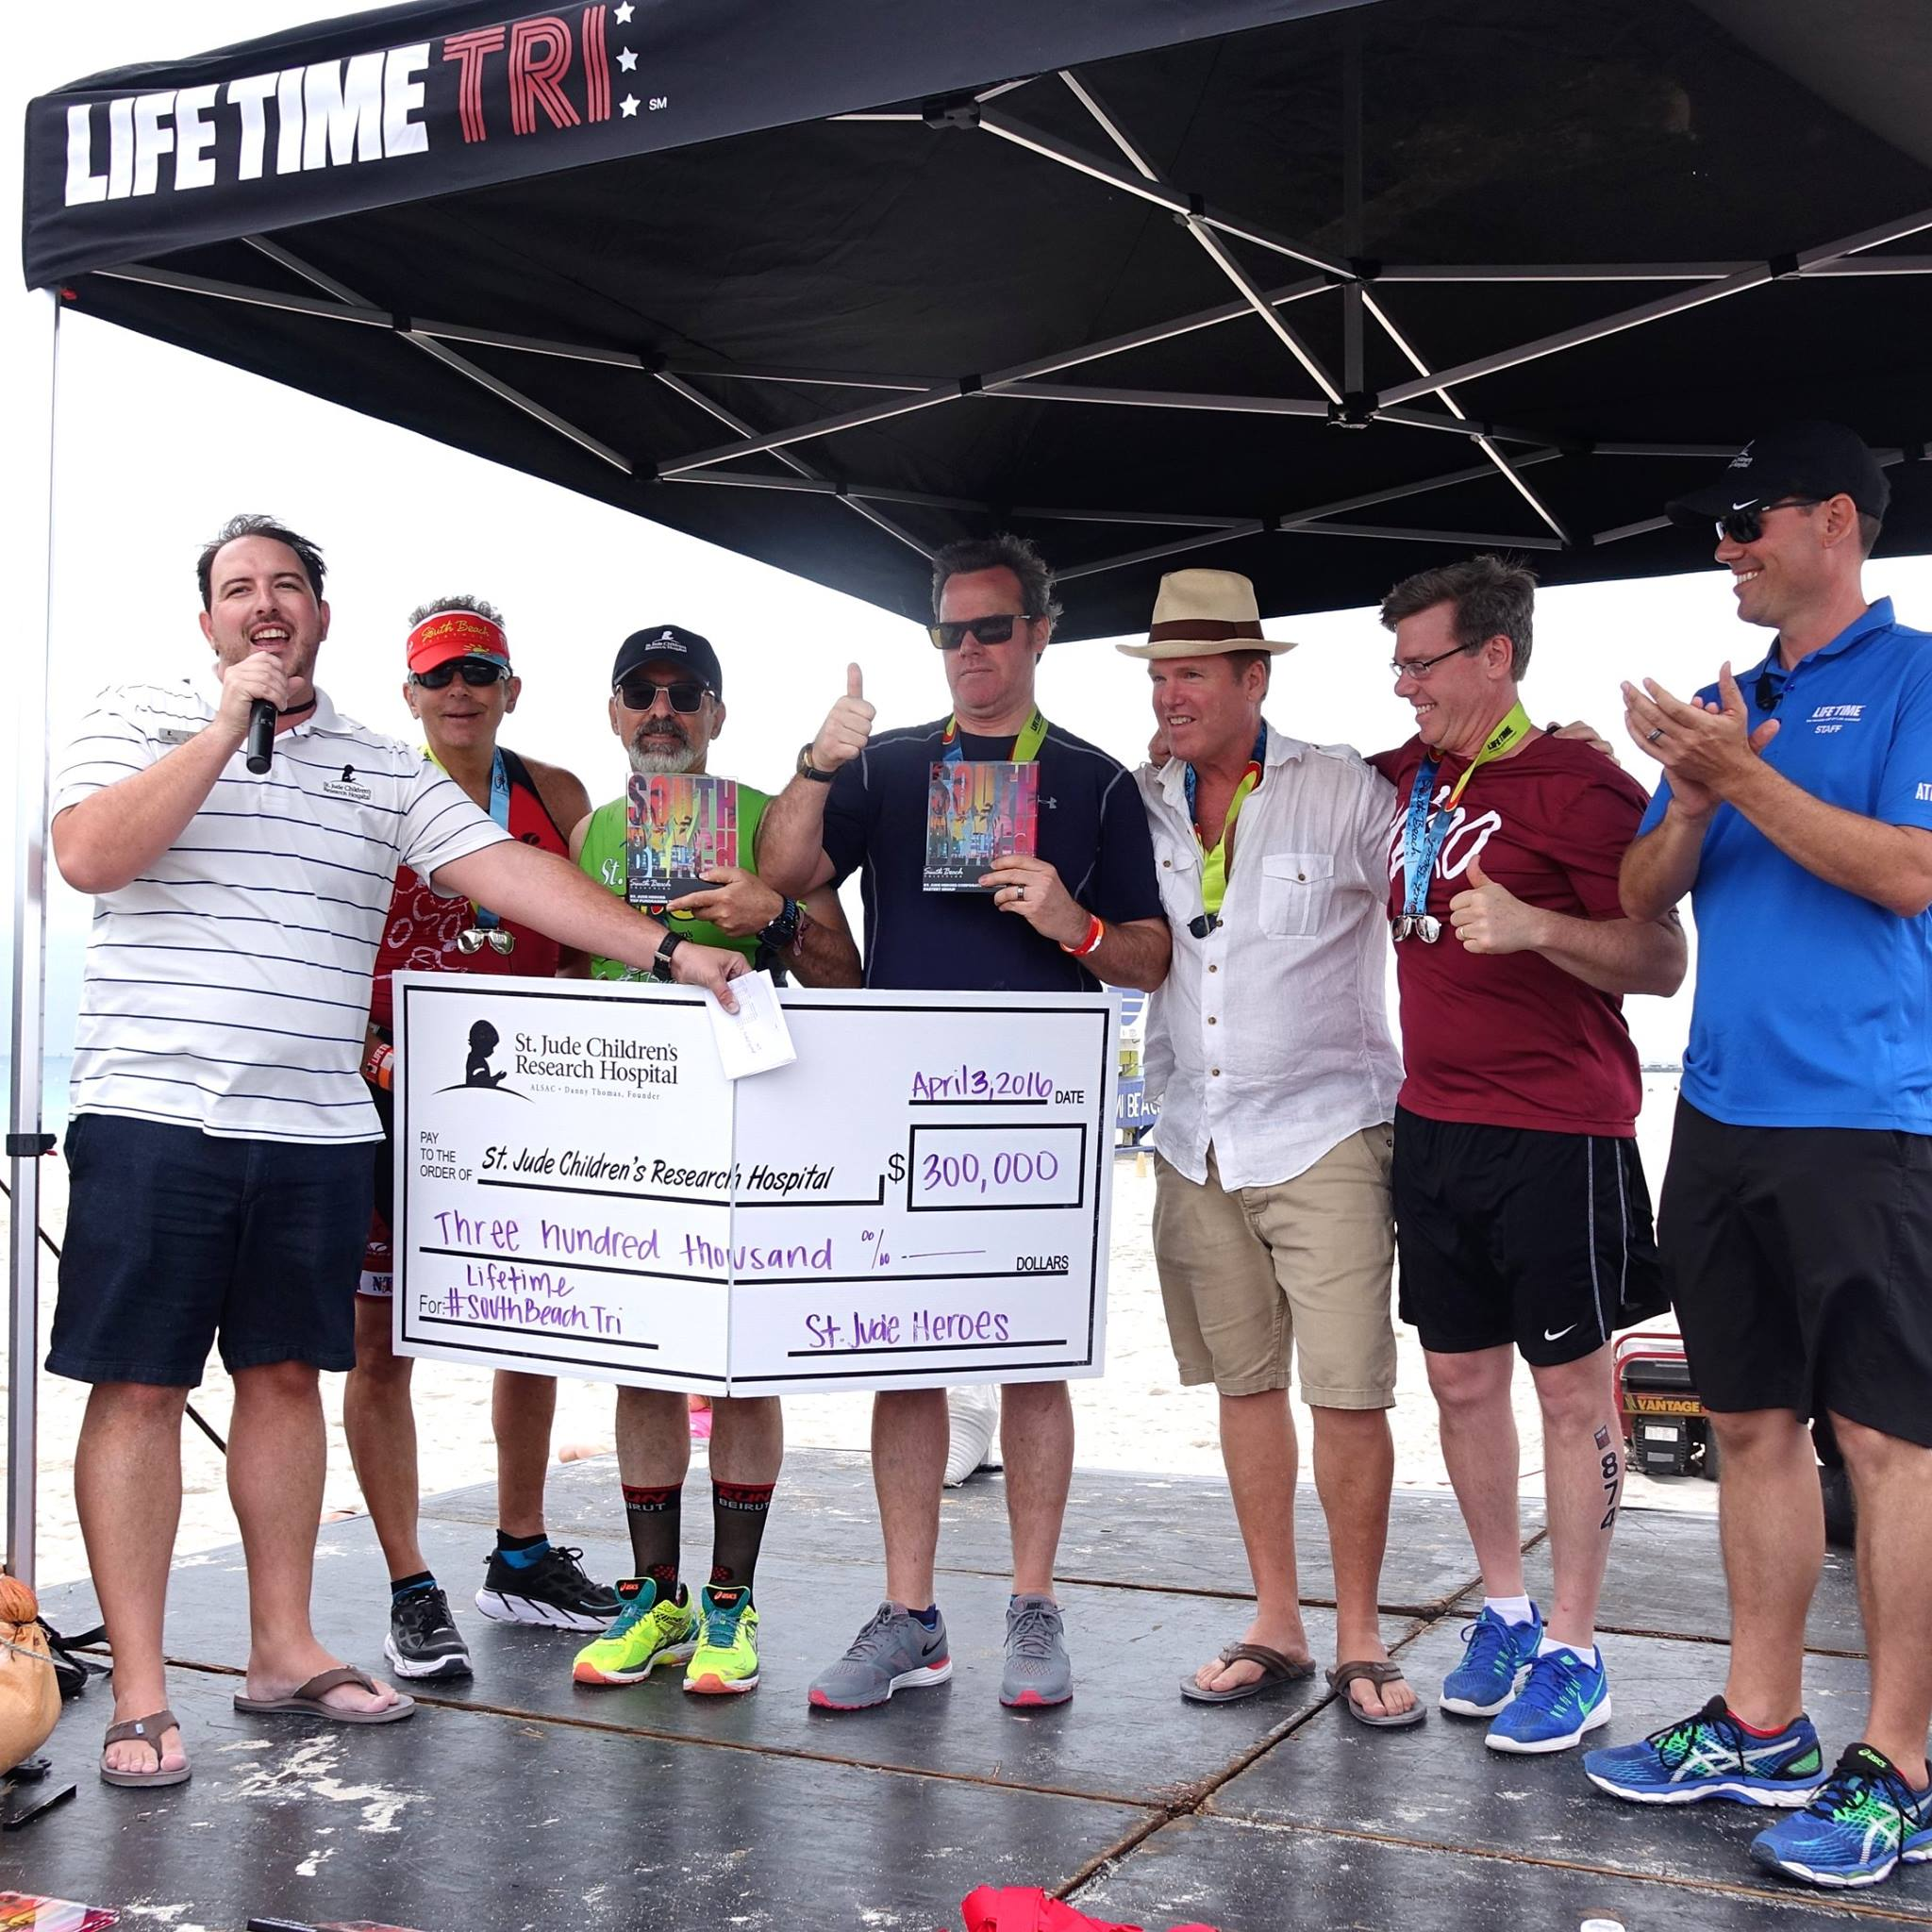 Supporting the iAM St. Jude Hero's Team in the 2016 South Beach Triathlon